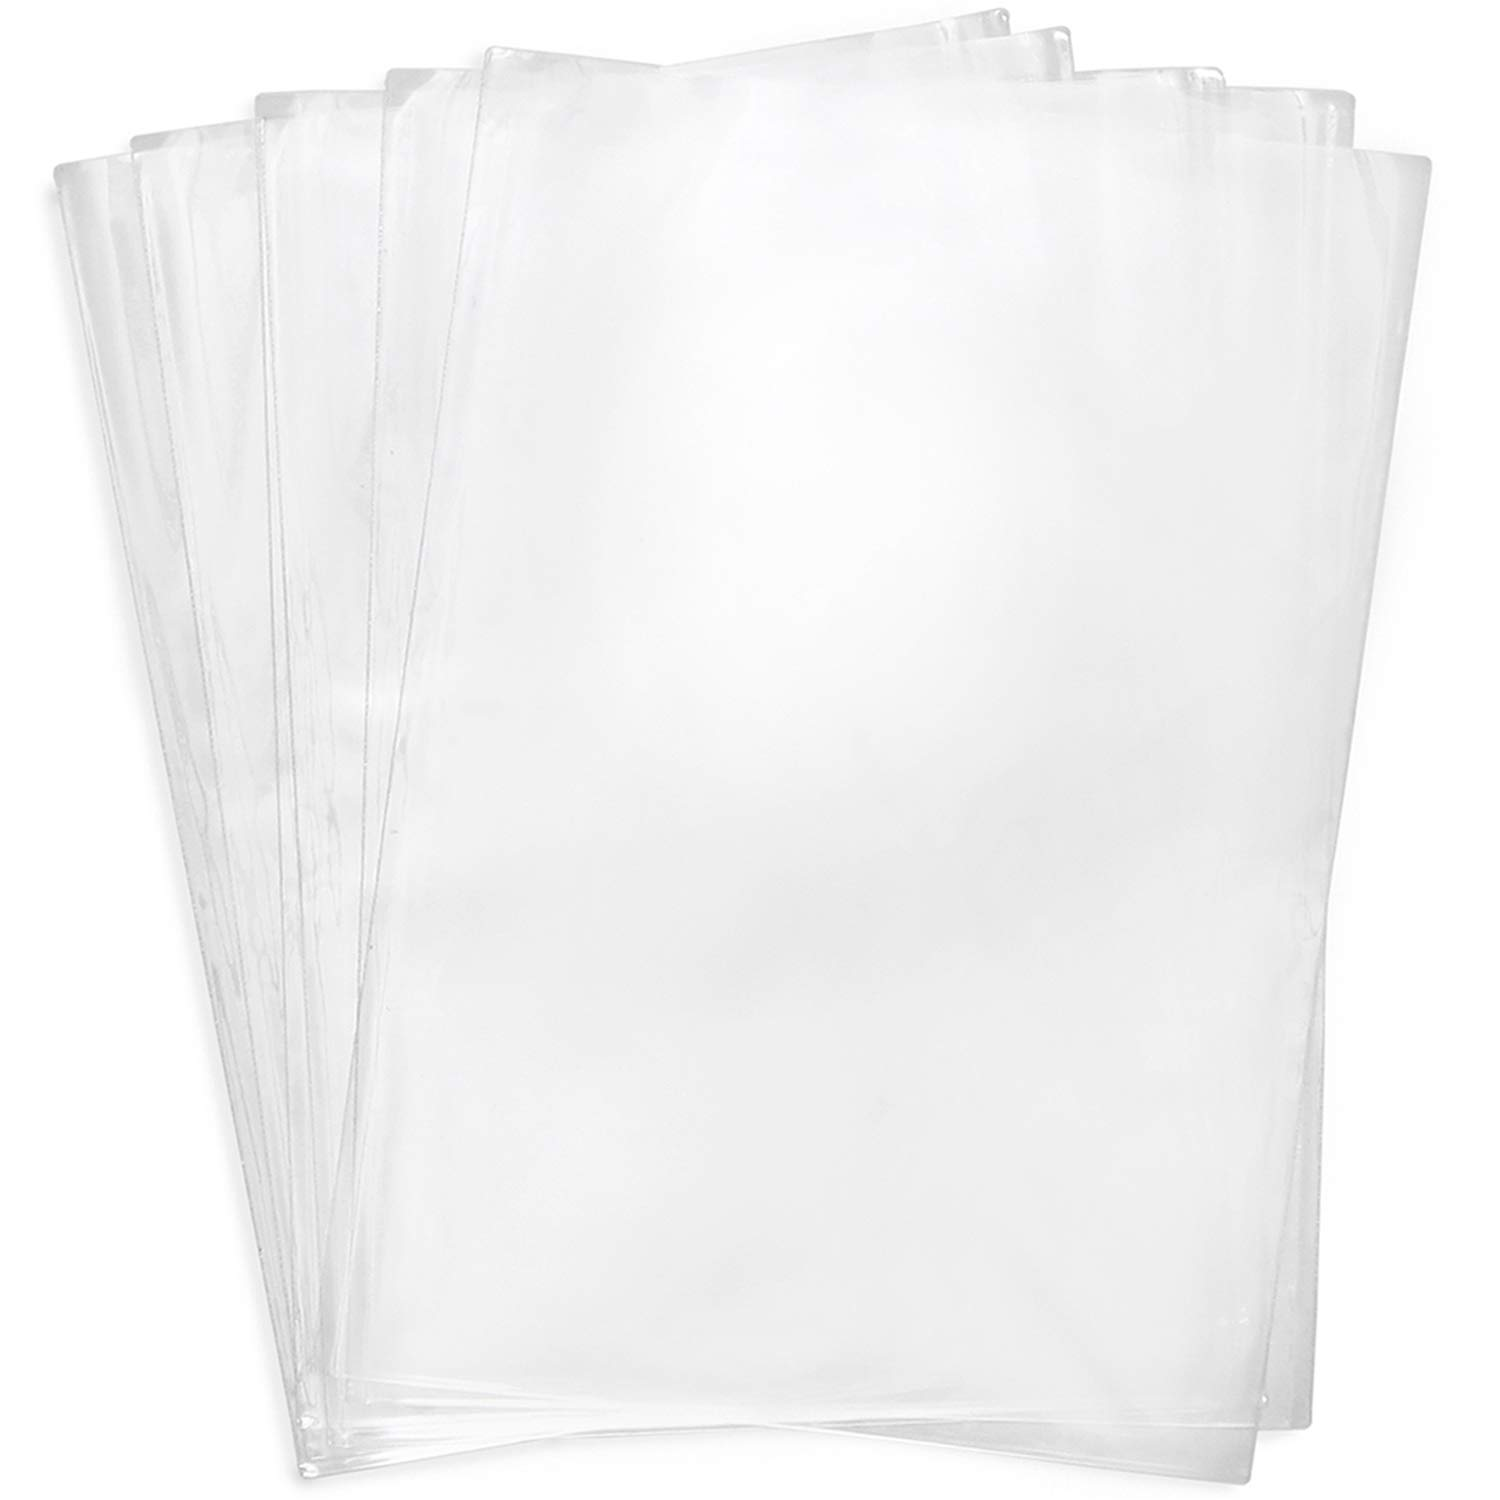 Shrink Wrap Bags,100 Pcs 8x12 Inches PVC Heat Shrink Wrap for Packagaing Soap,Shoes,Bath Bombs, Film DVD/CD, Giftware, Candles,Gifts,Homemade DIY Projects